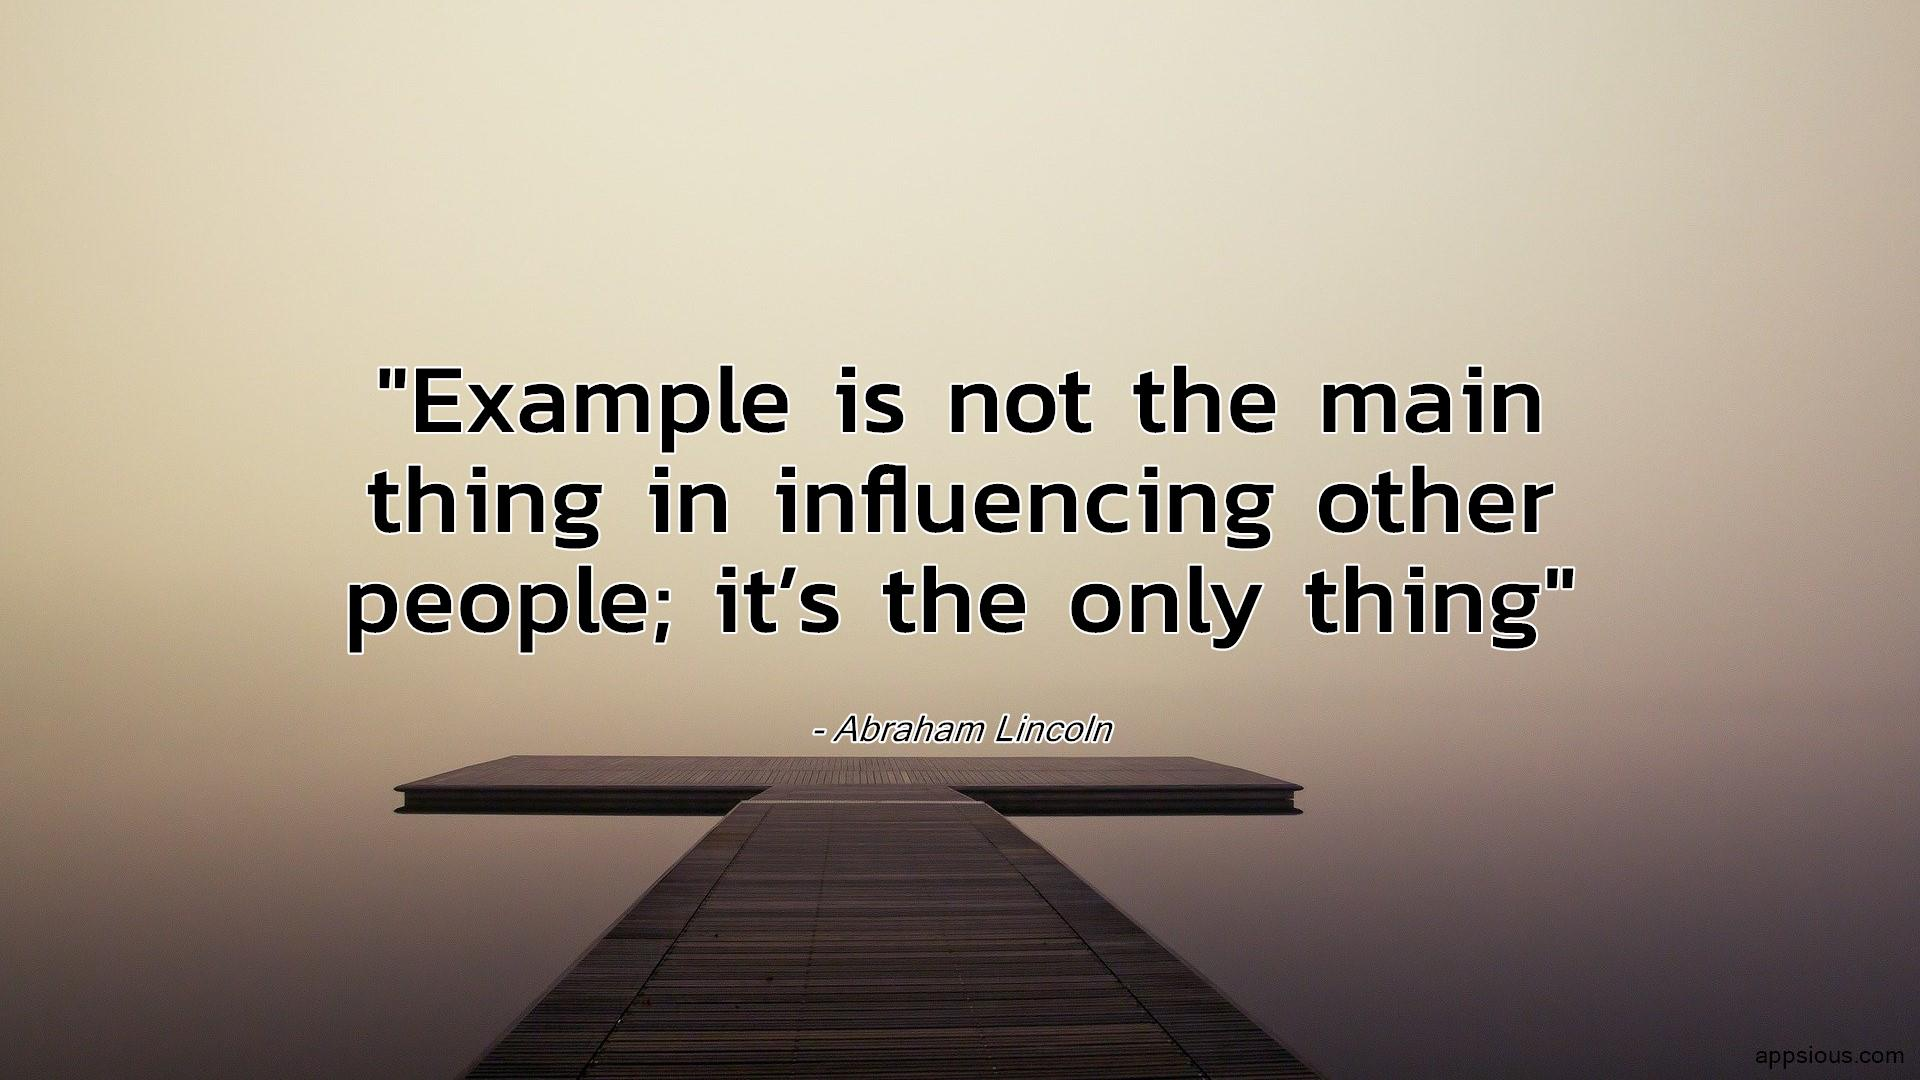 Example is not the main thing in influencing other people; it's the only thing